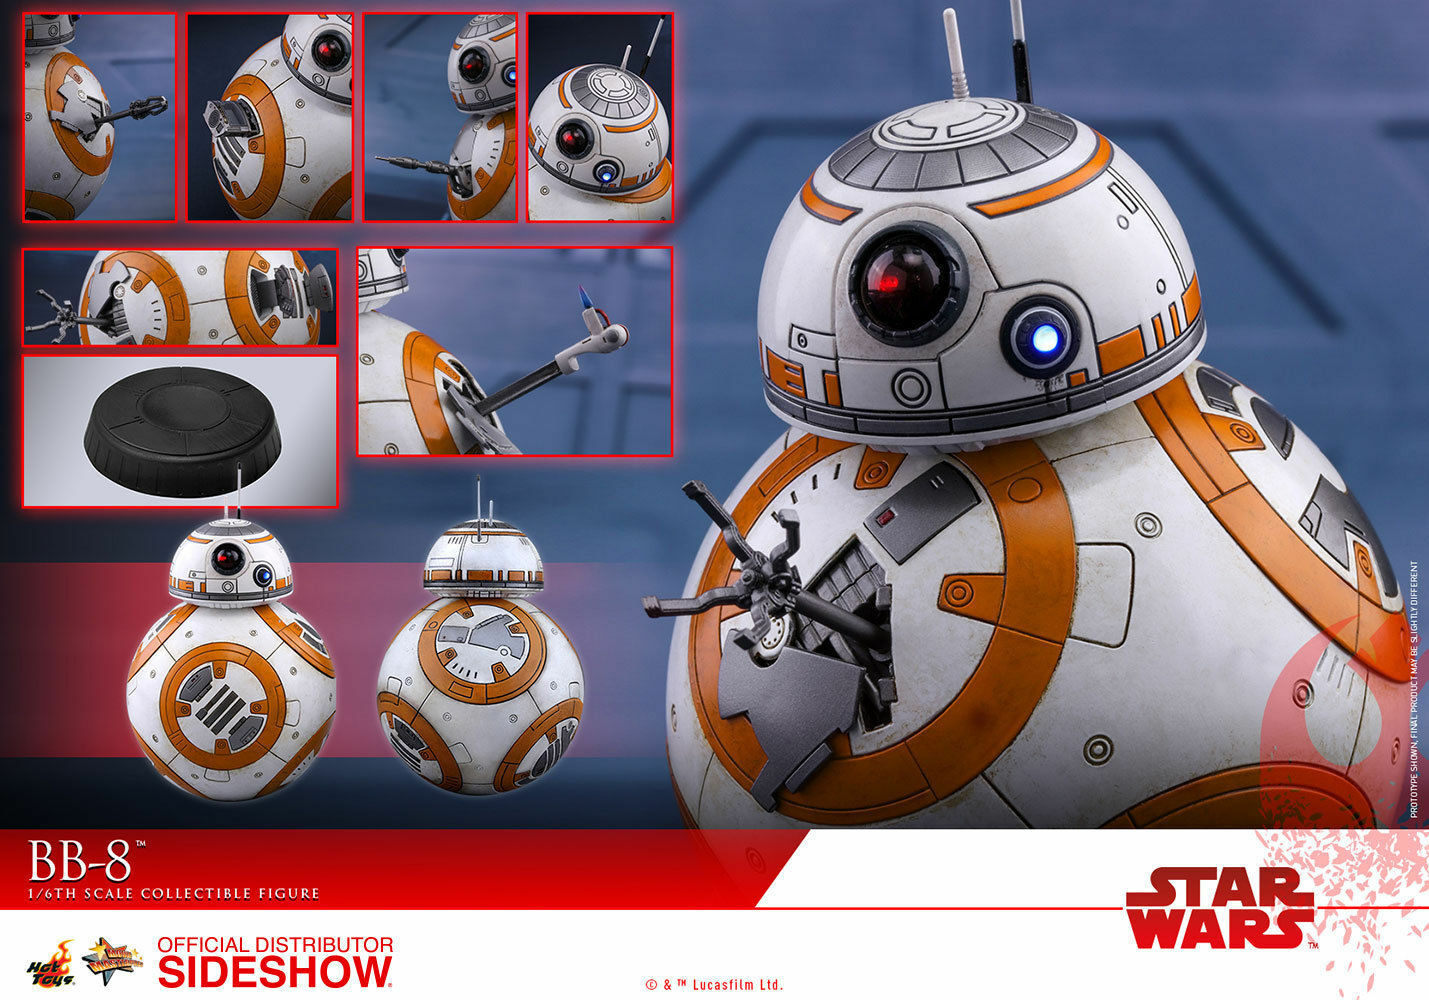 Hot Toys Star Wars BB-8 Astromech Droid 1 6 Scale Figure  New In Shipper